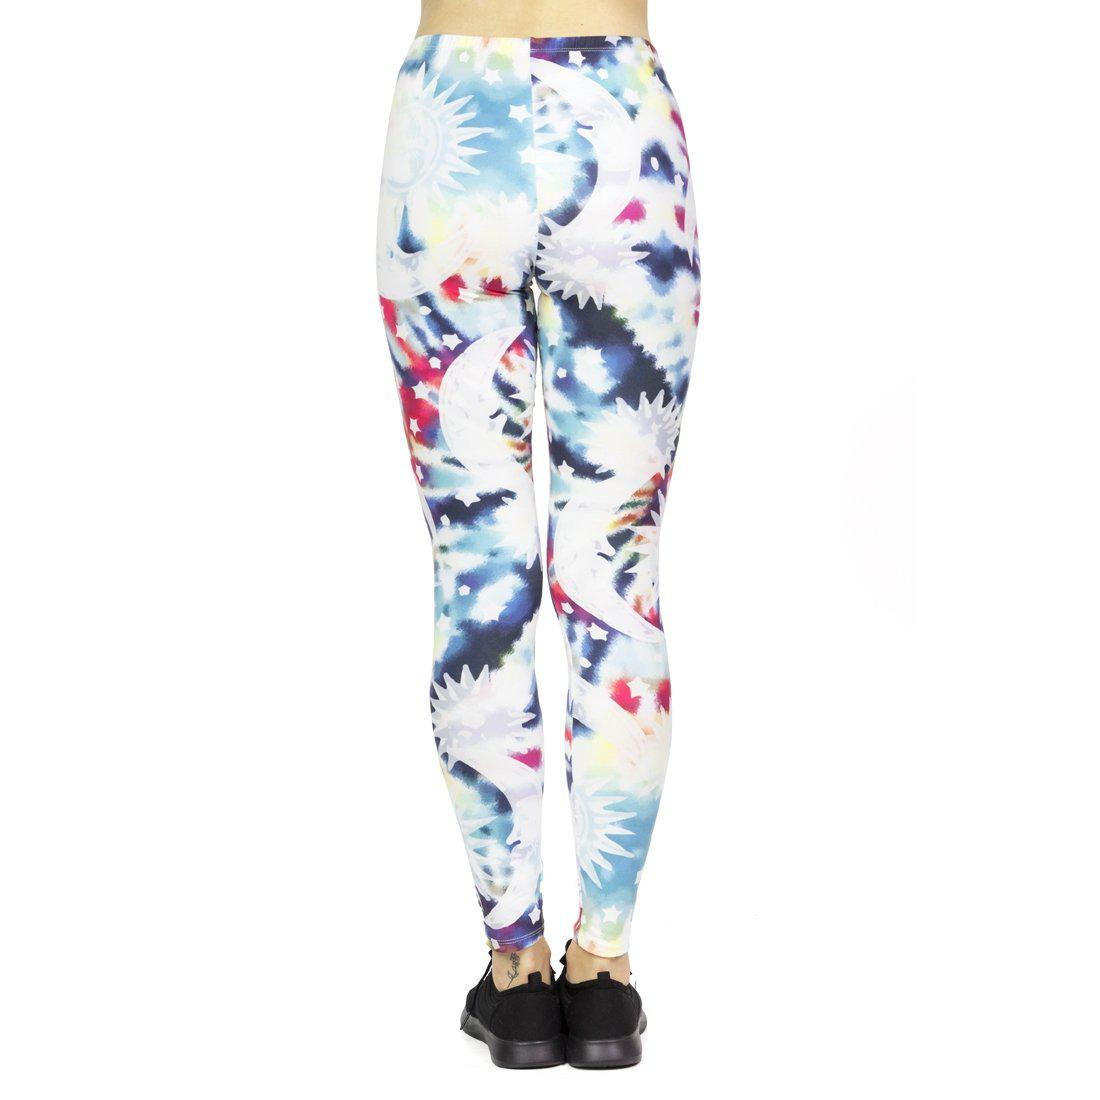 Amori Shibori Moon And Stars Regular Leggings